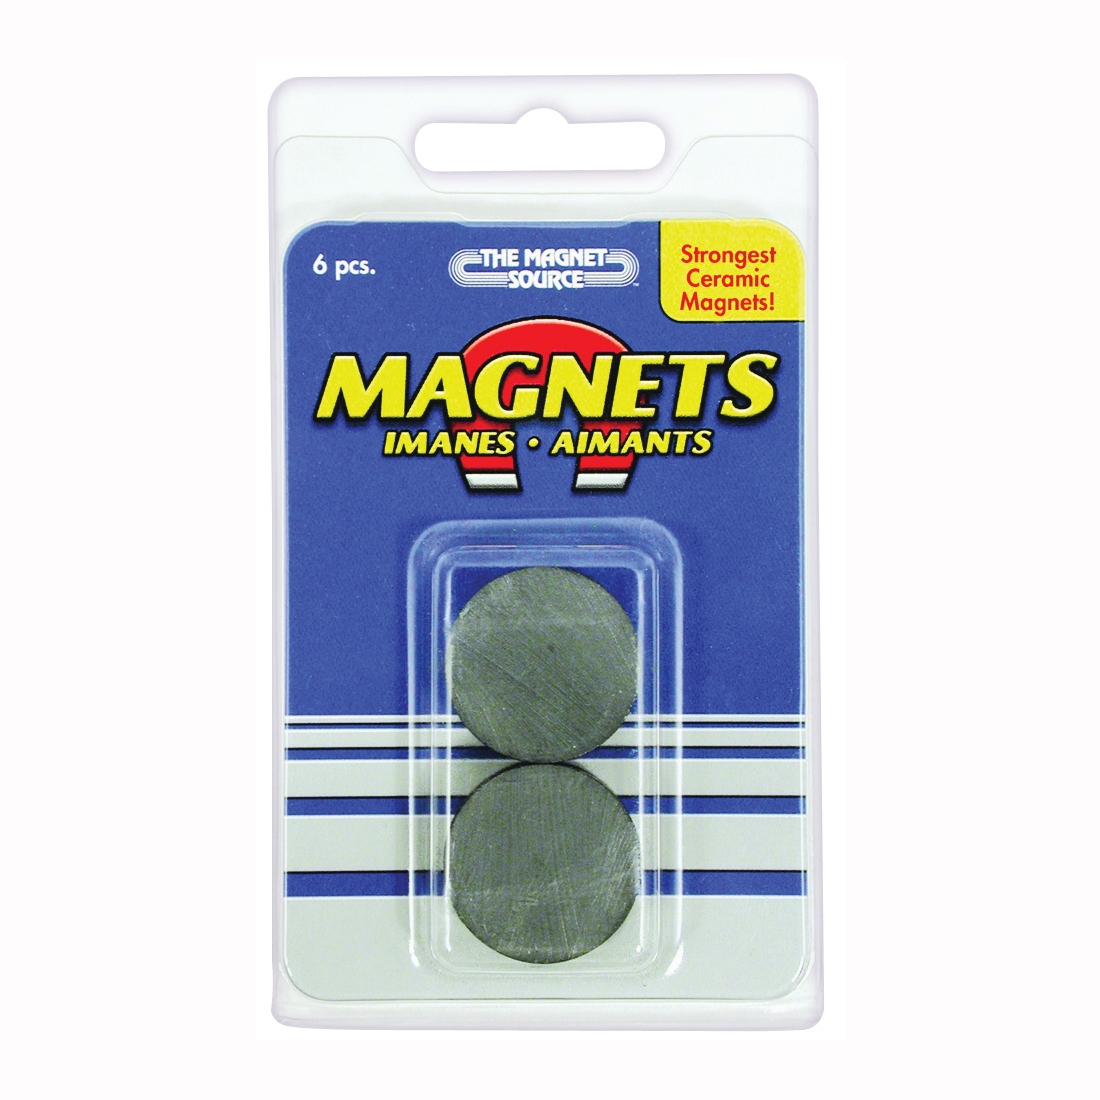 Picture of Magnet Source 07004 Magnetic Discs, 1 in Dia, Charcoal Gray, 6, Pack